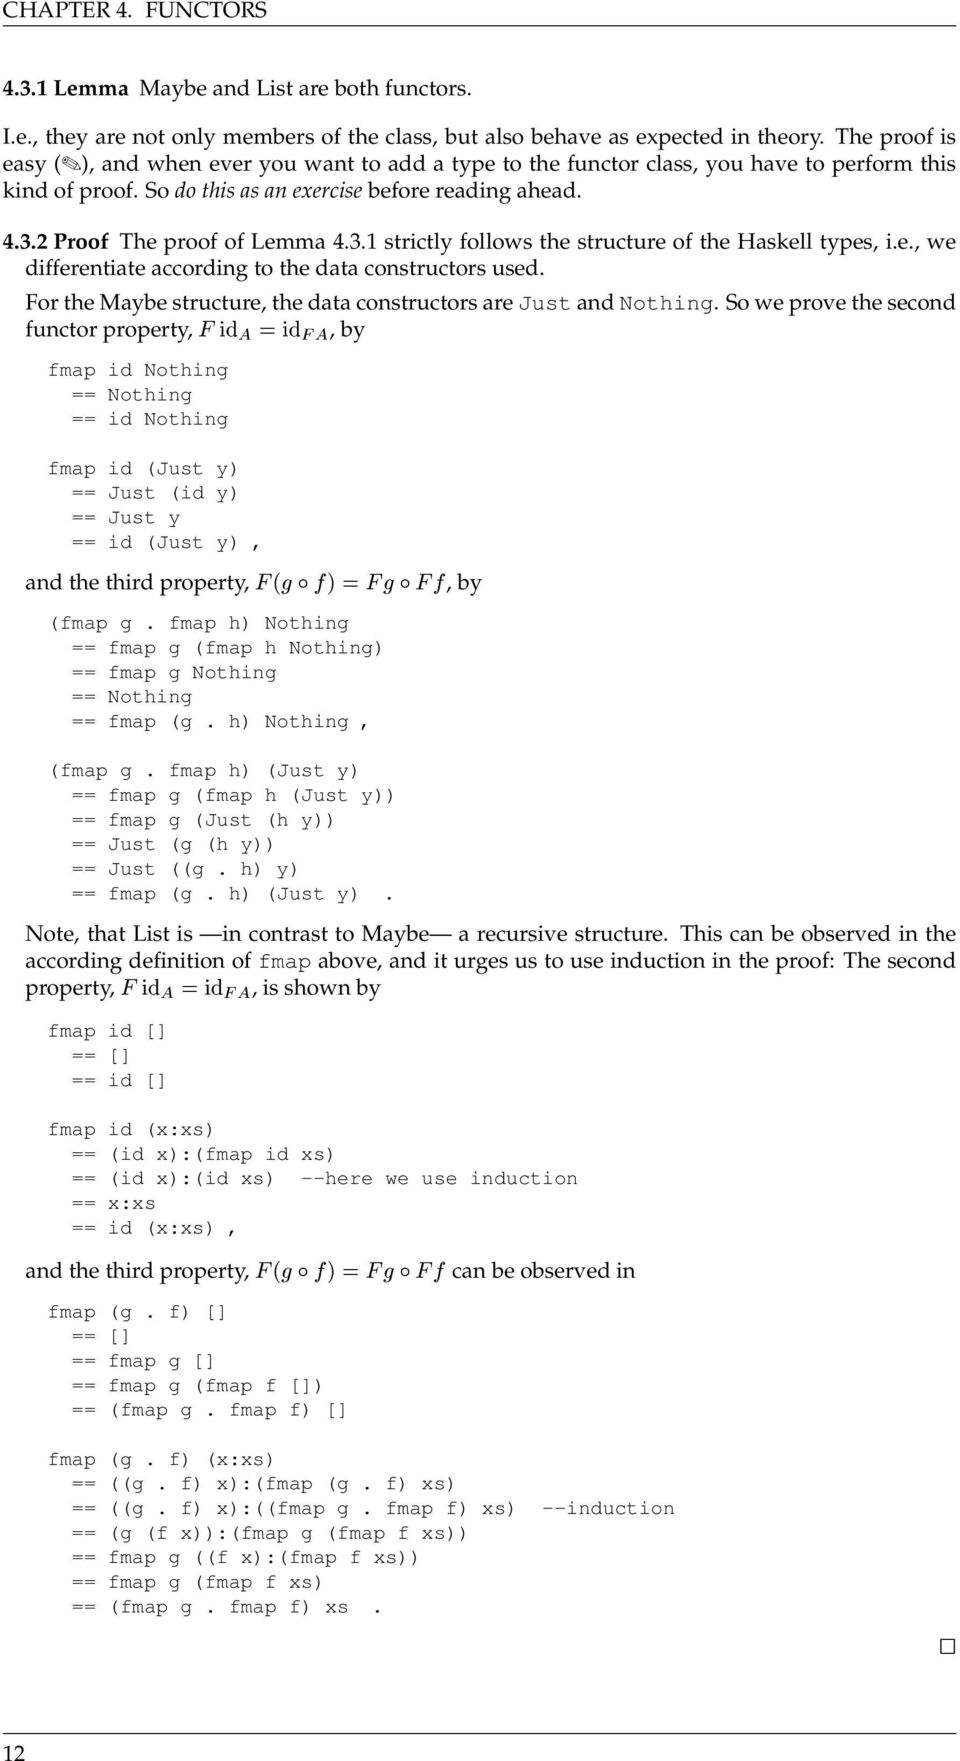 2 Proof The proof of Lemma 4.3.1 strictly follows the structure of the Haskell types, i.e., we differentiate according to the data constructors used.